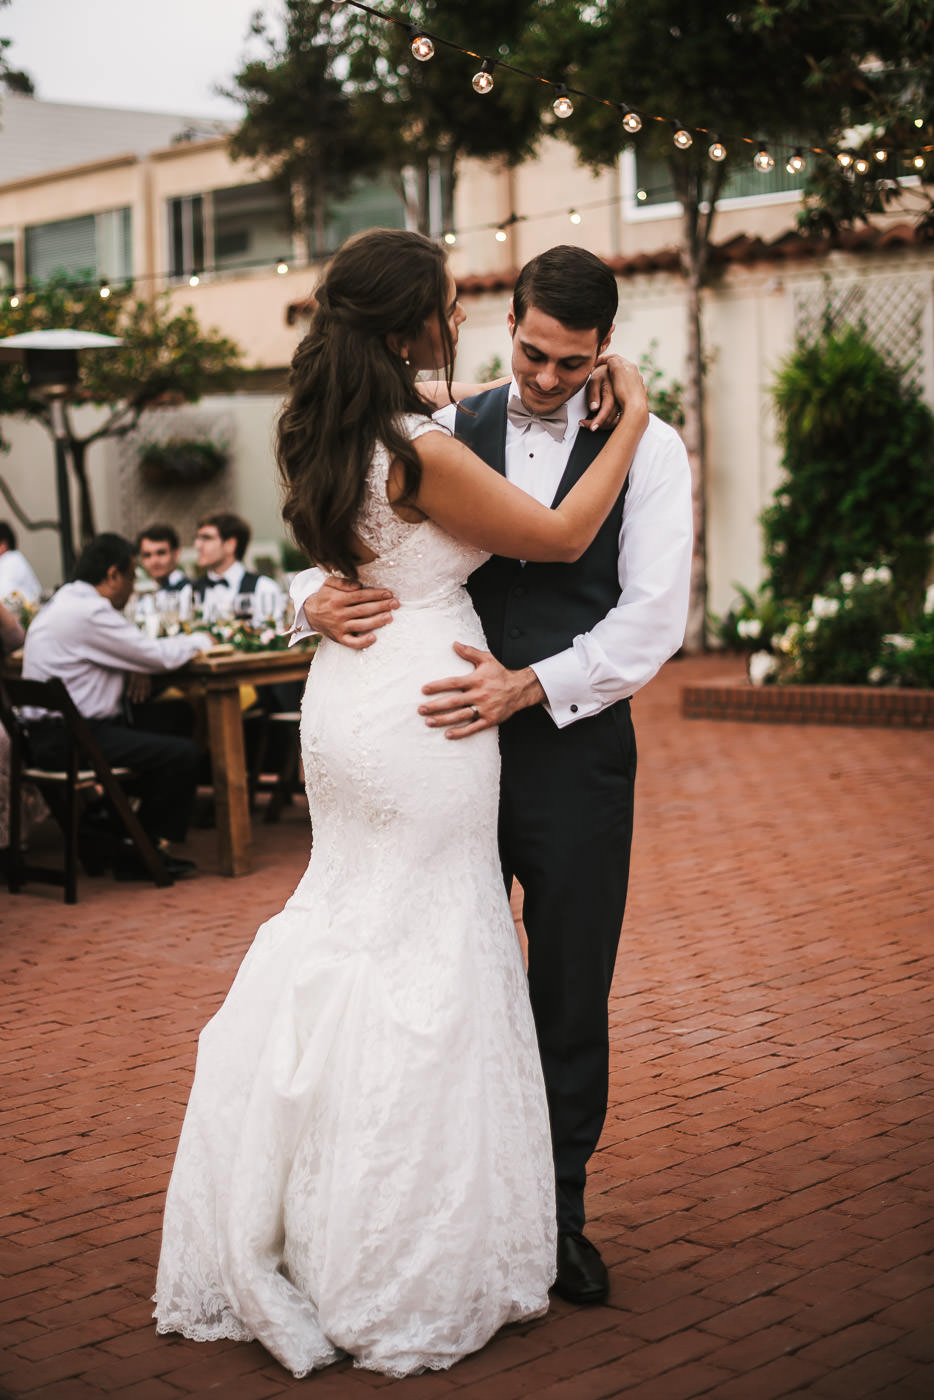 Tender first dance at this Darlington House reception.